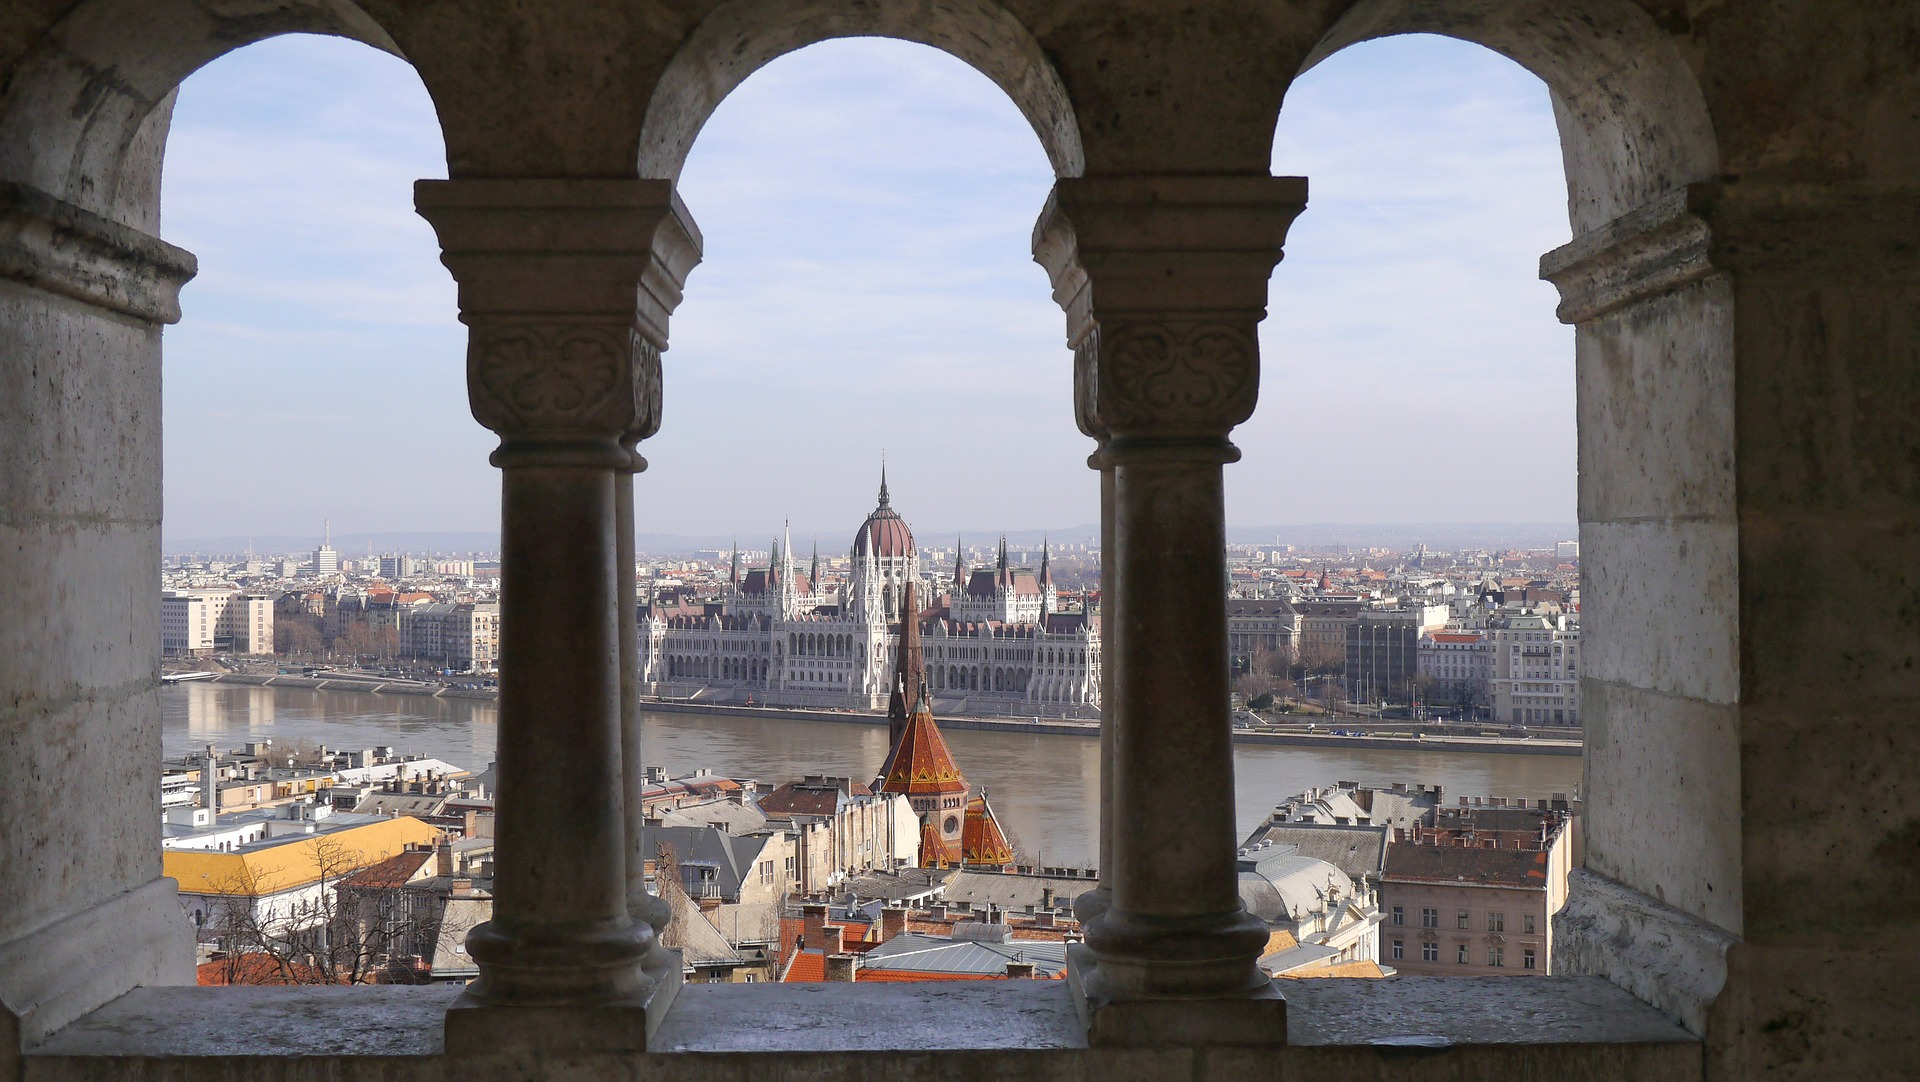 Weekend in Budapest: Views of Pest from Fisherman's Bastian